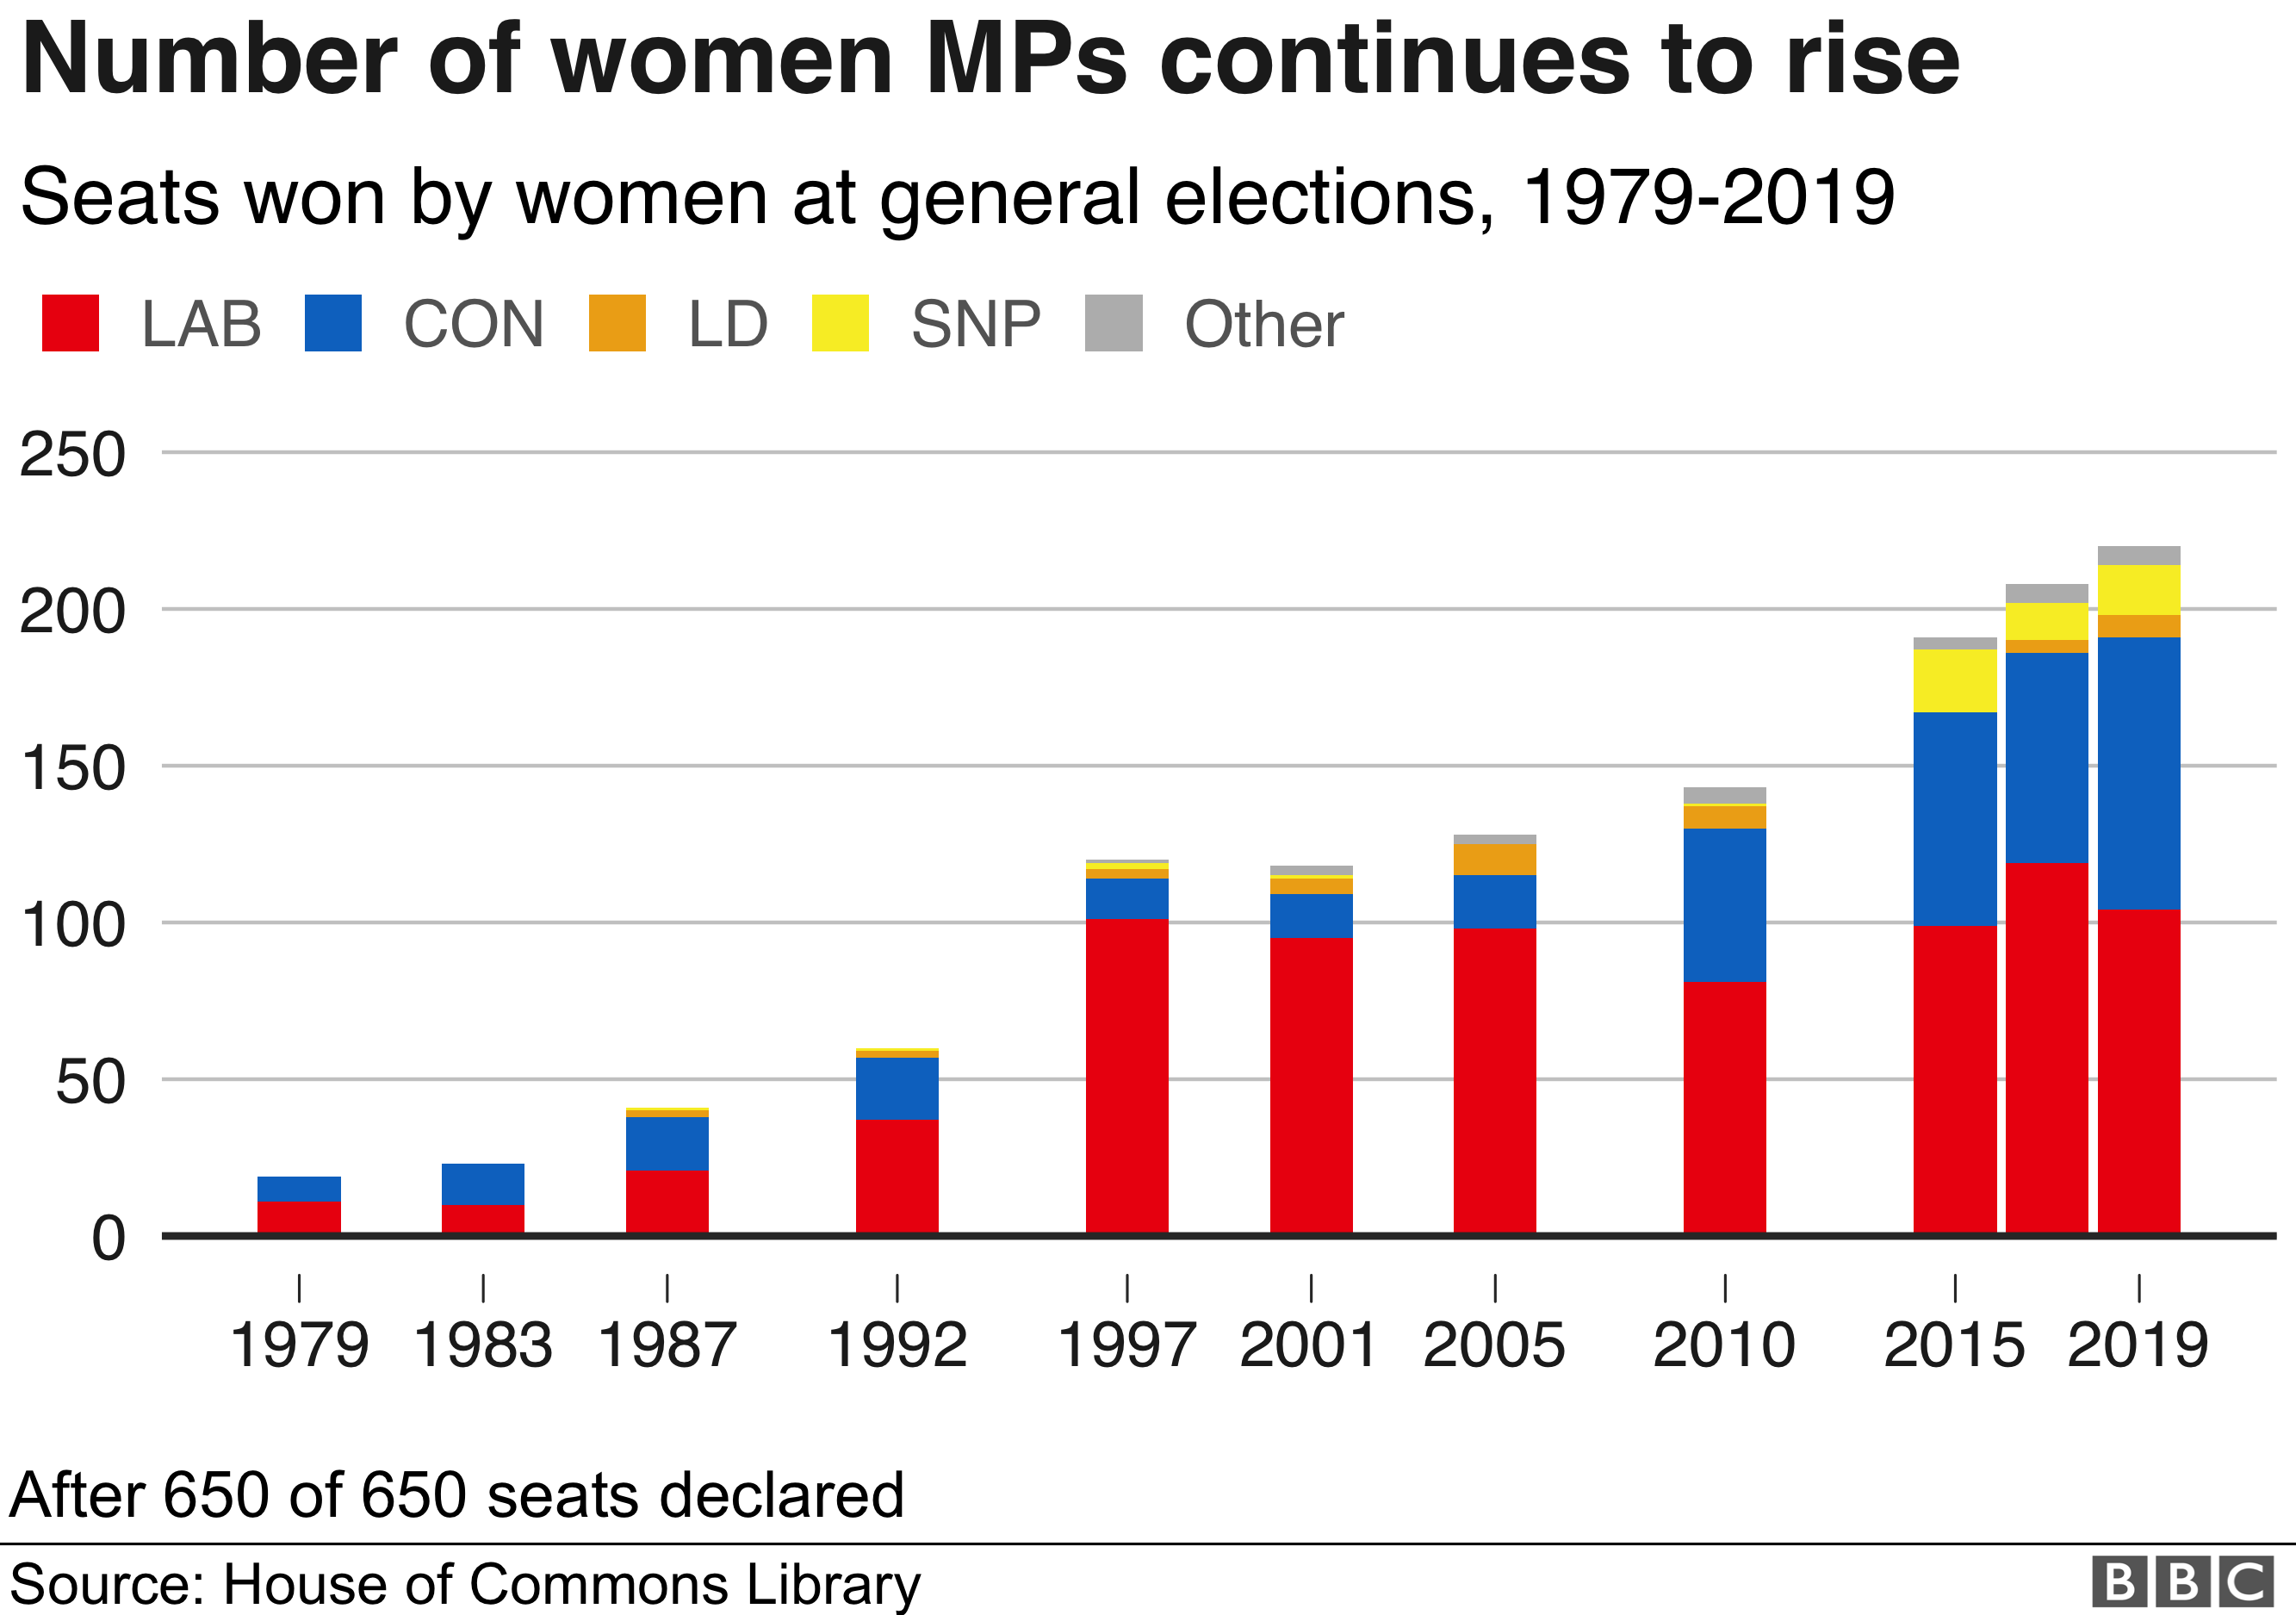 Number of women MPs is rising